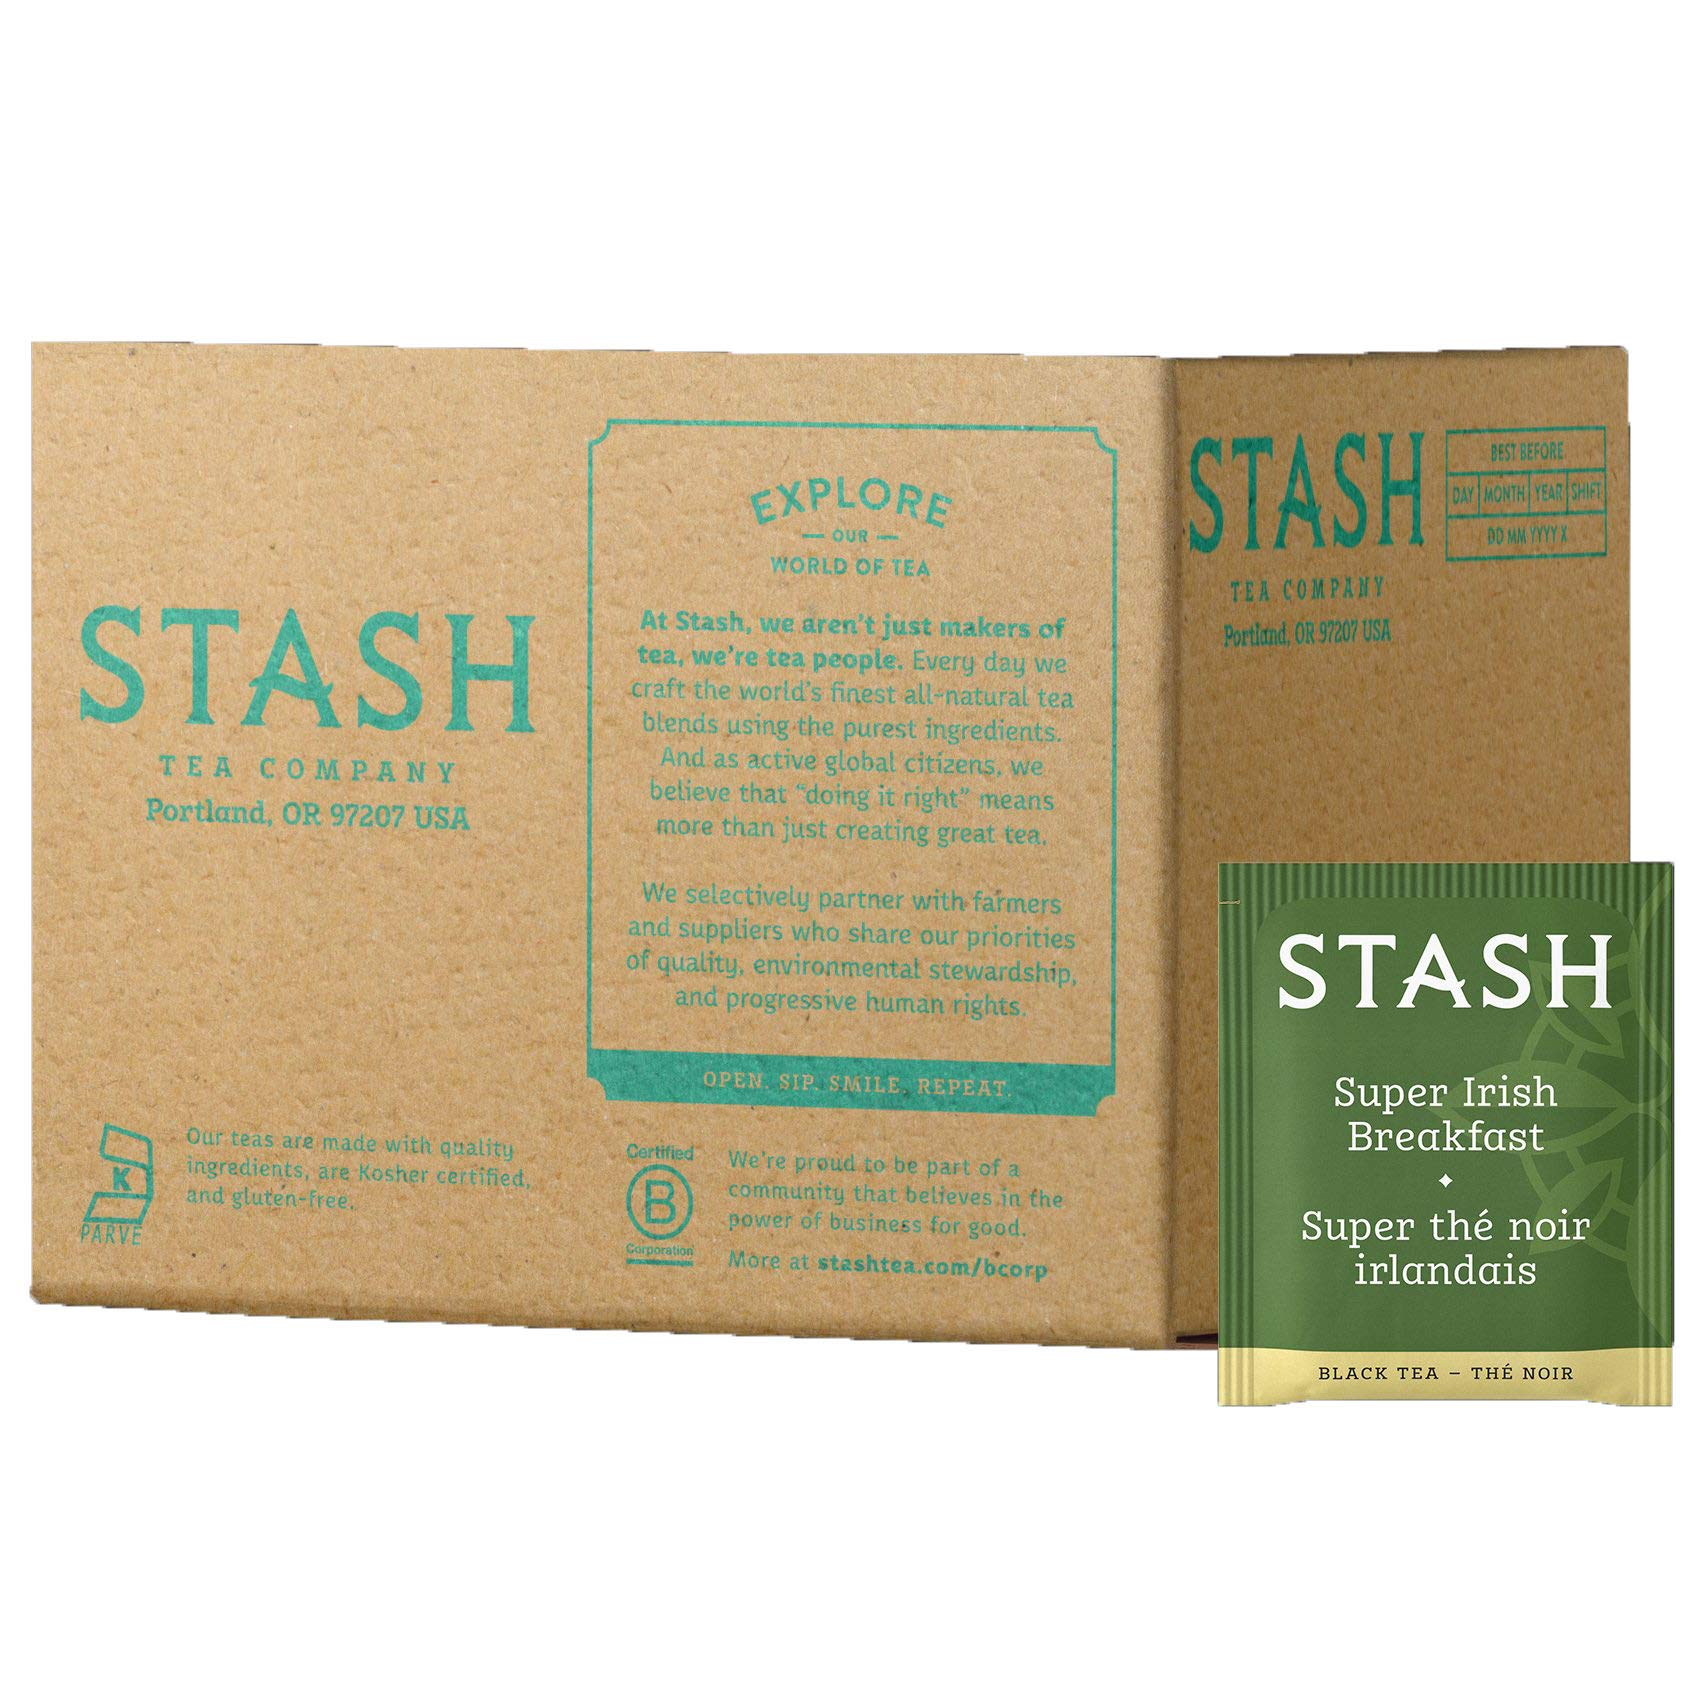 Stash Tea Super Irish Breakfast Black Tea 100 Count Box of Tea Bags in Foil (packaging may vary) Individual Black Tea Bags for Use in Teapots Mugs or Cups, Brew Hot Tea or Iced Tea